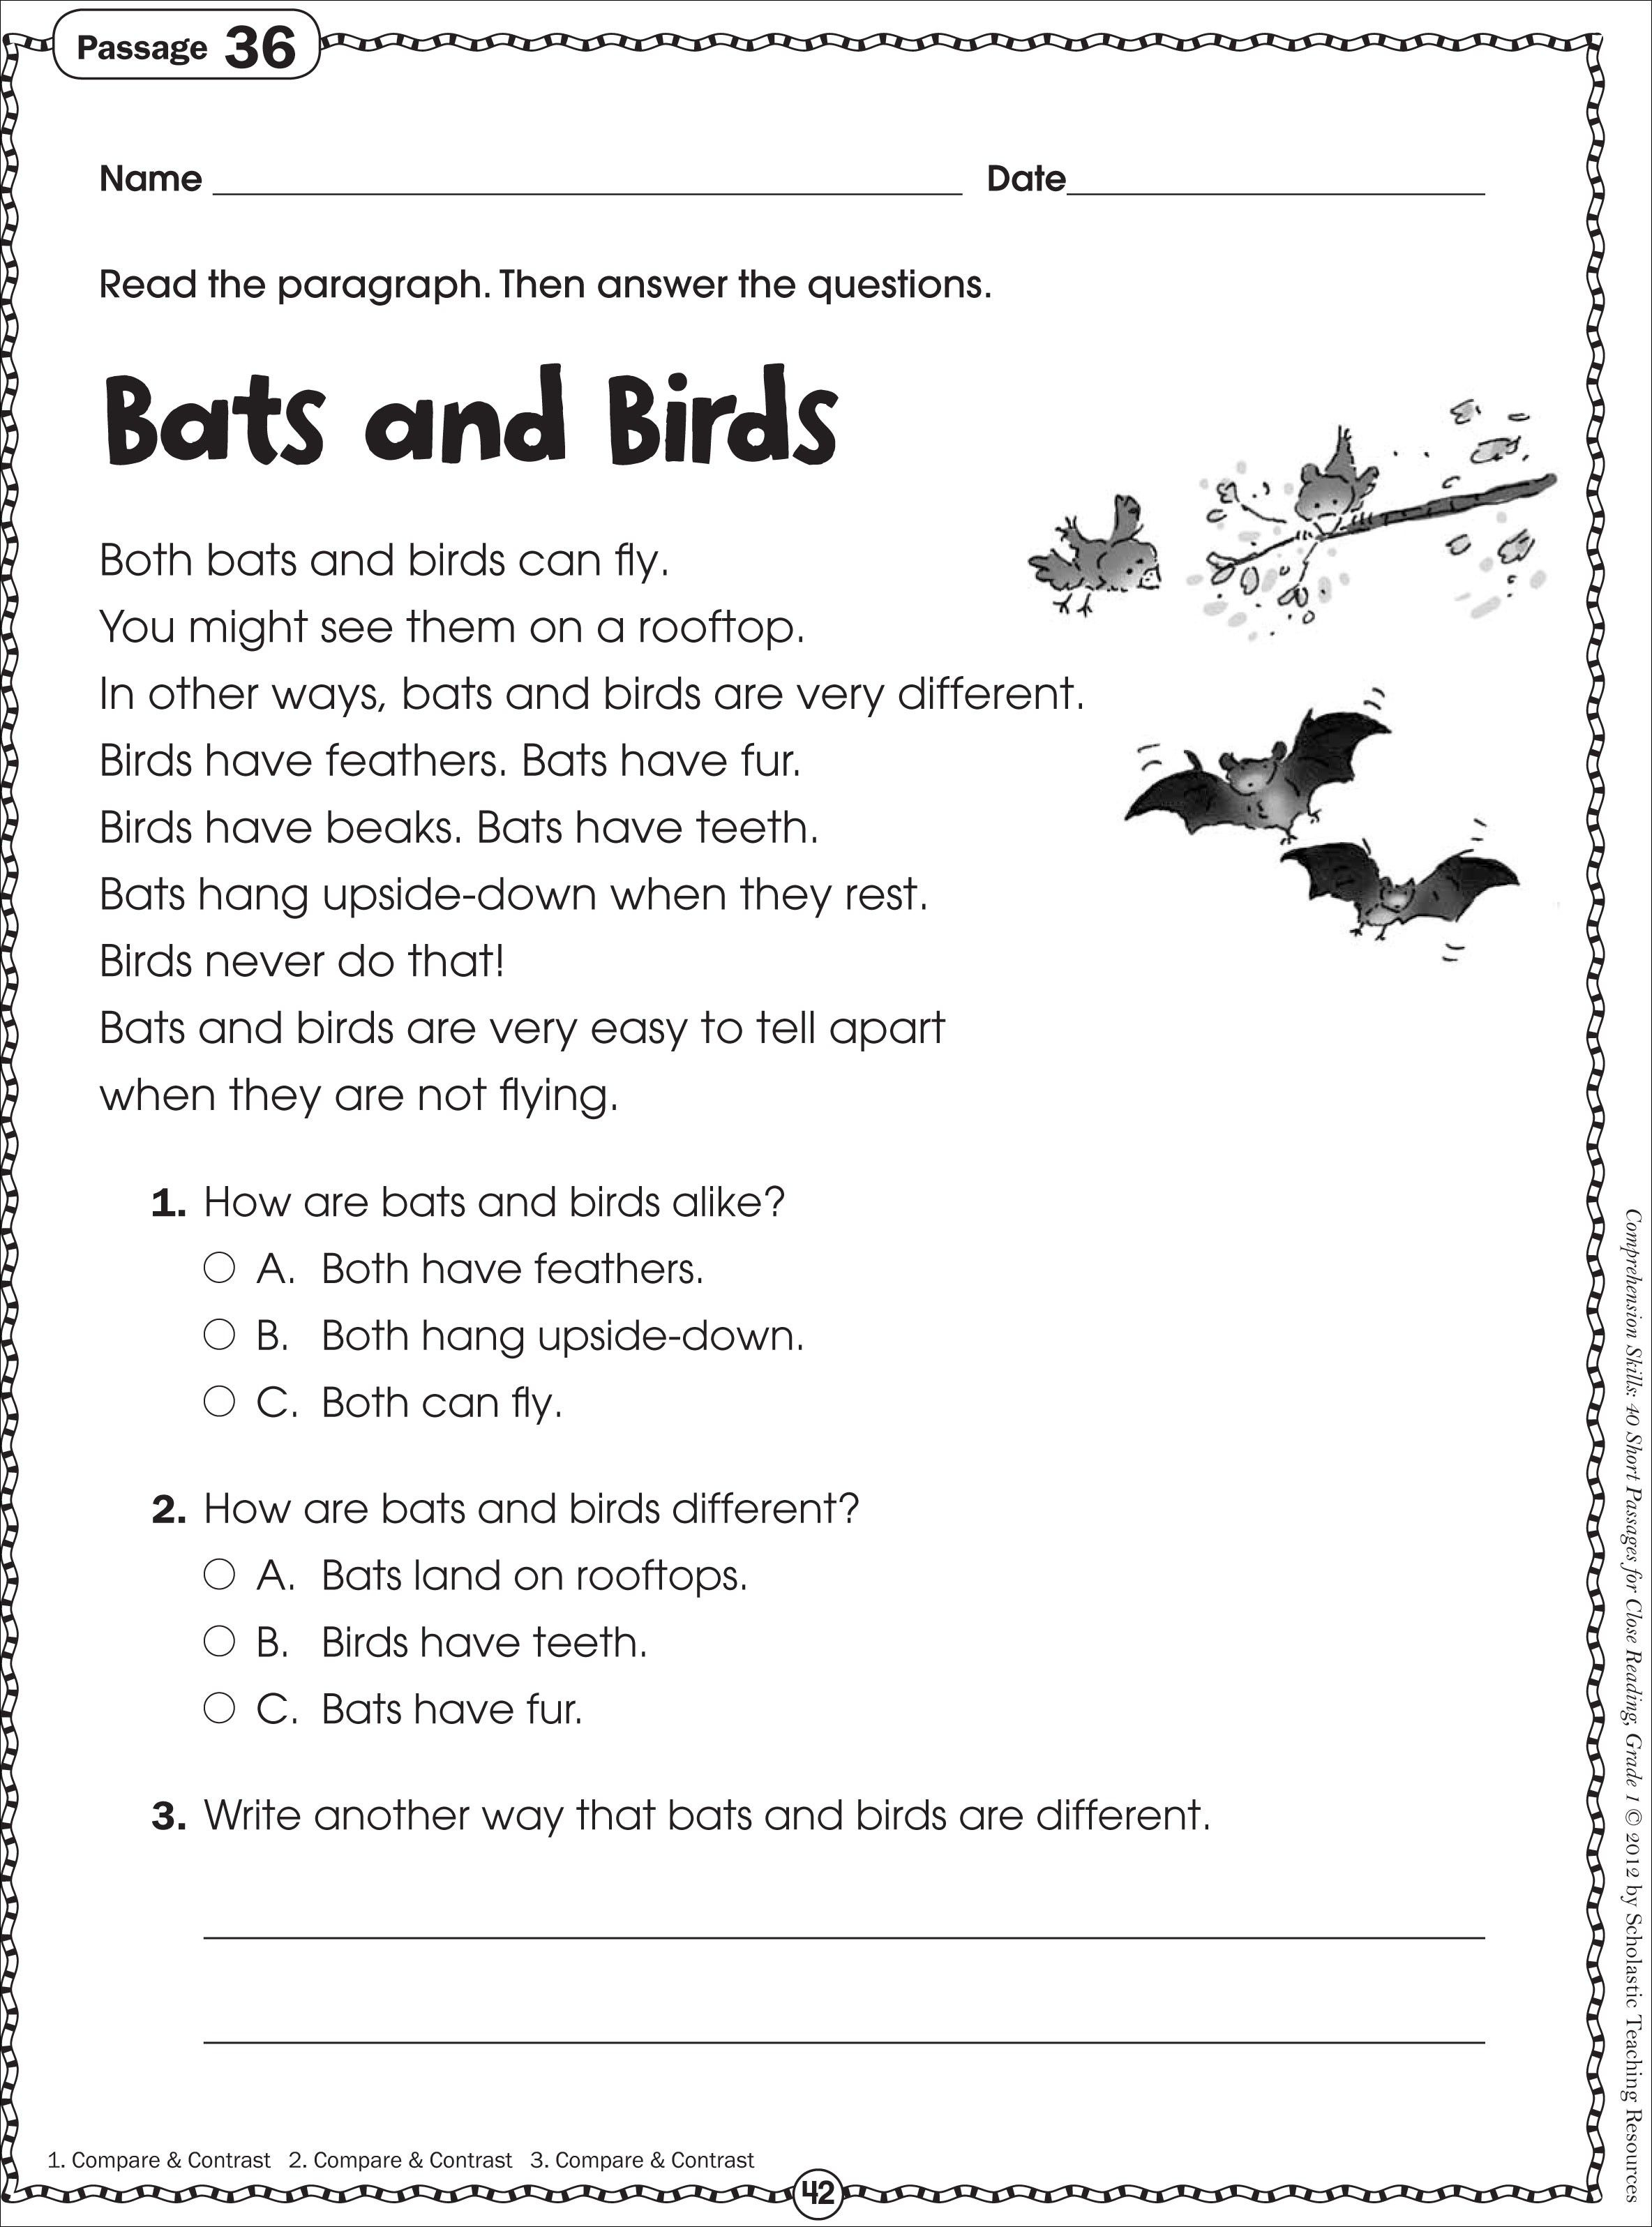 Free Printable Reading Comprehension Worksheets For Kindergarten | Printable Comprehension Worksheets For Grade 3